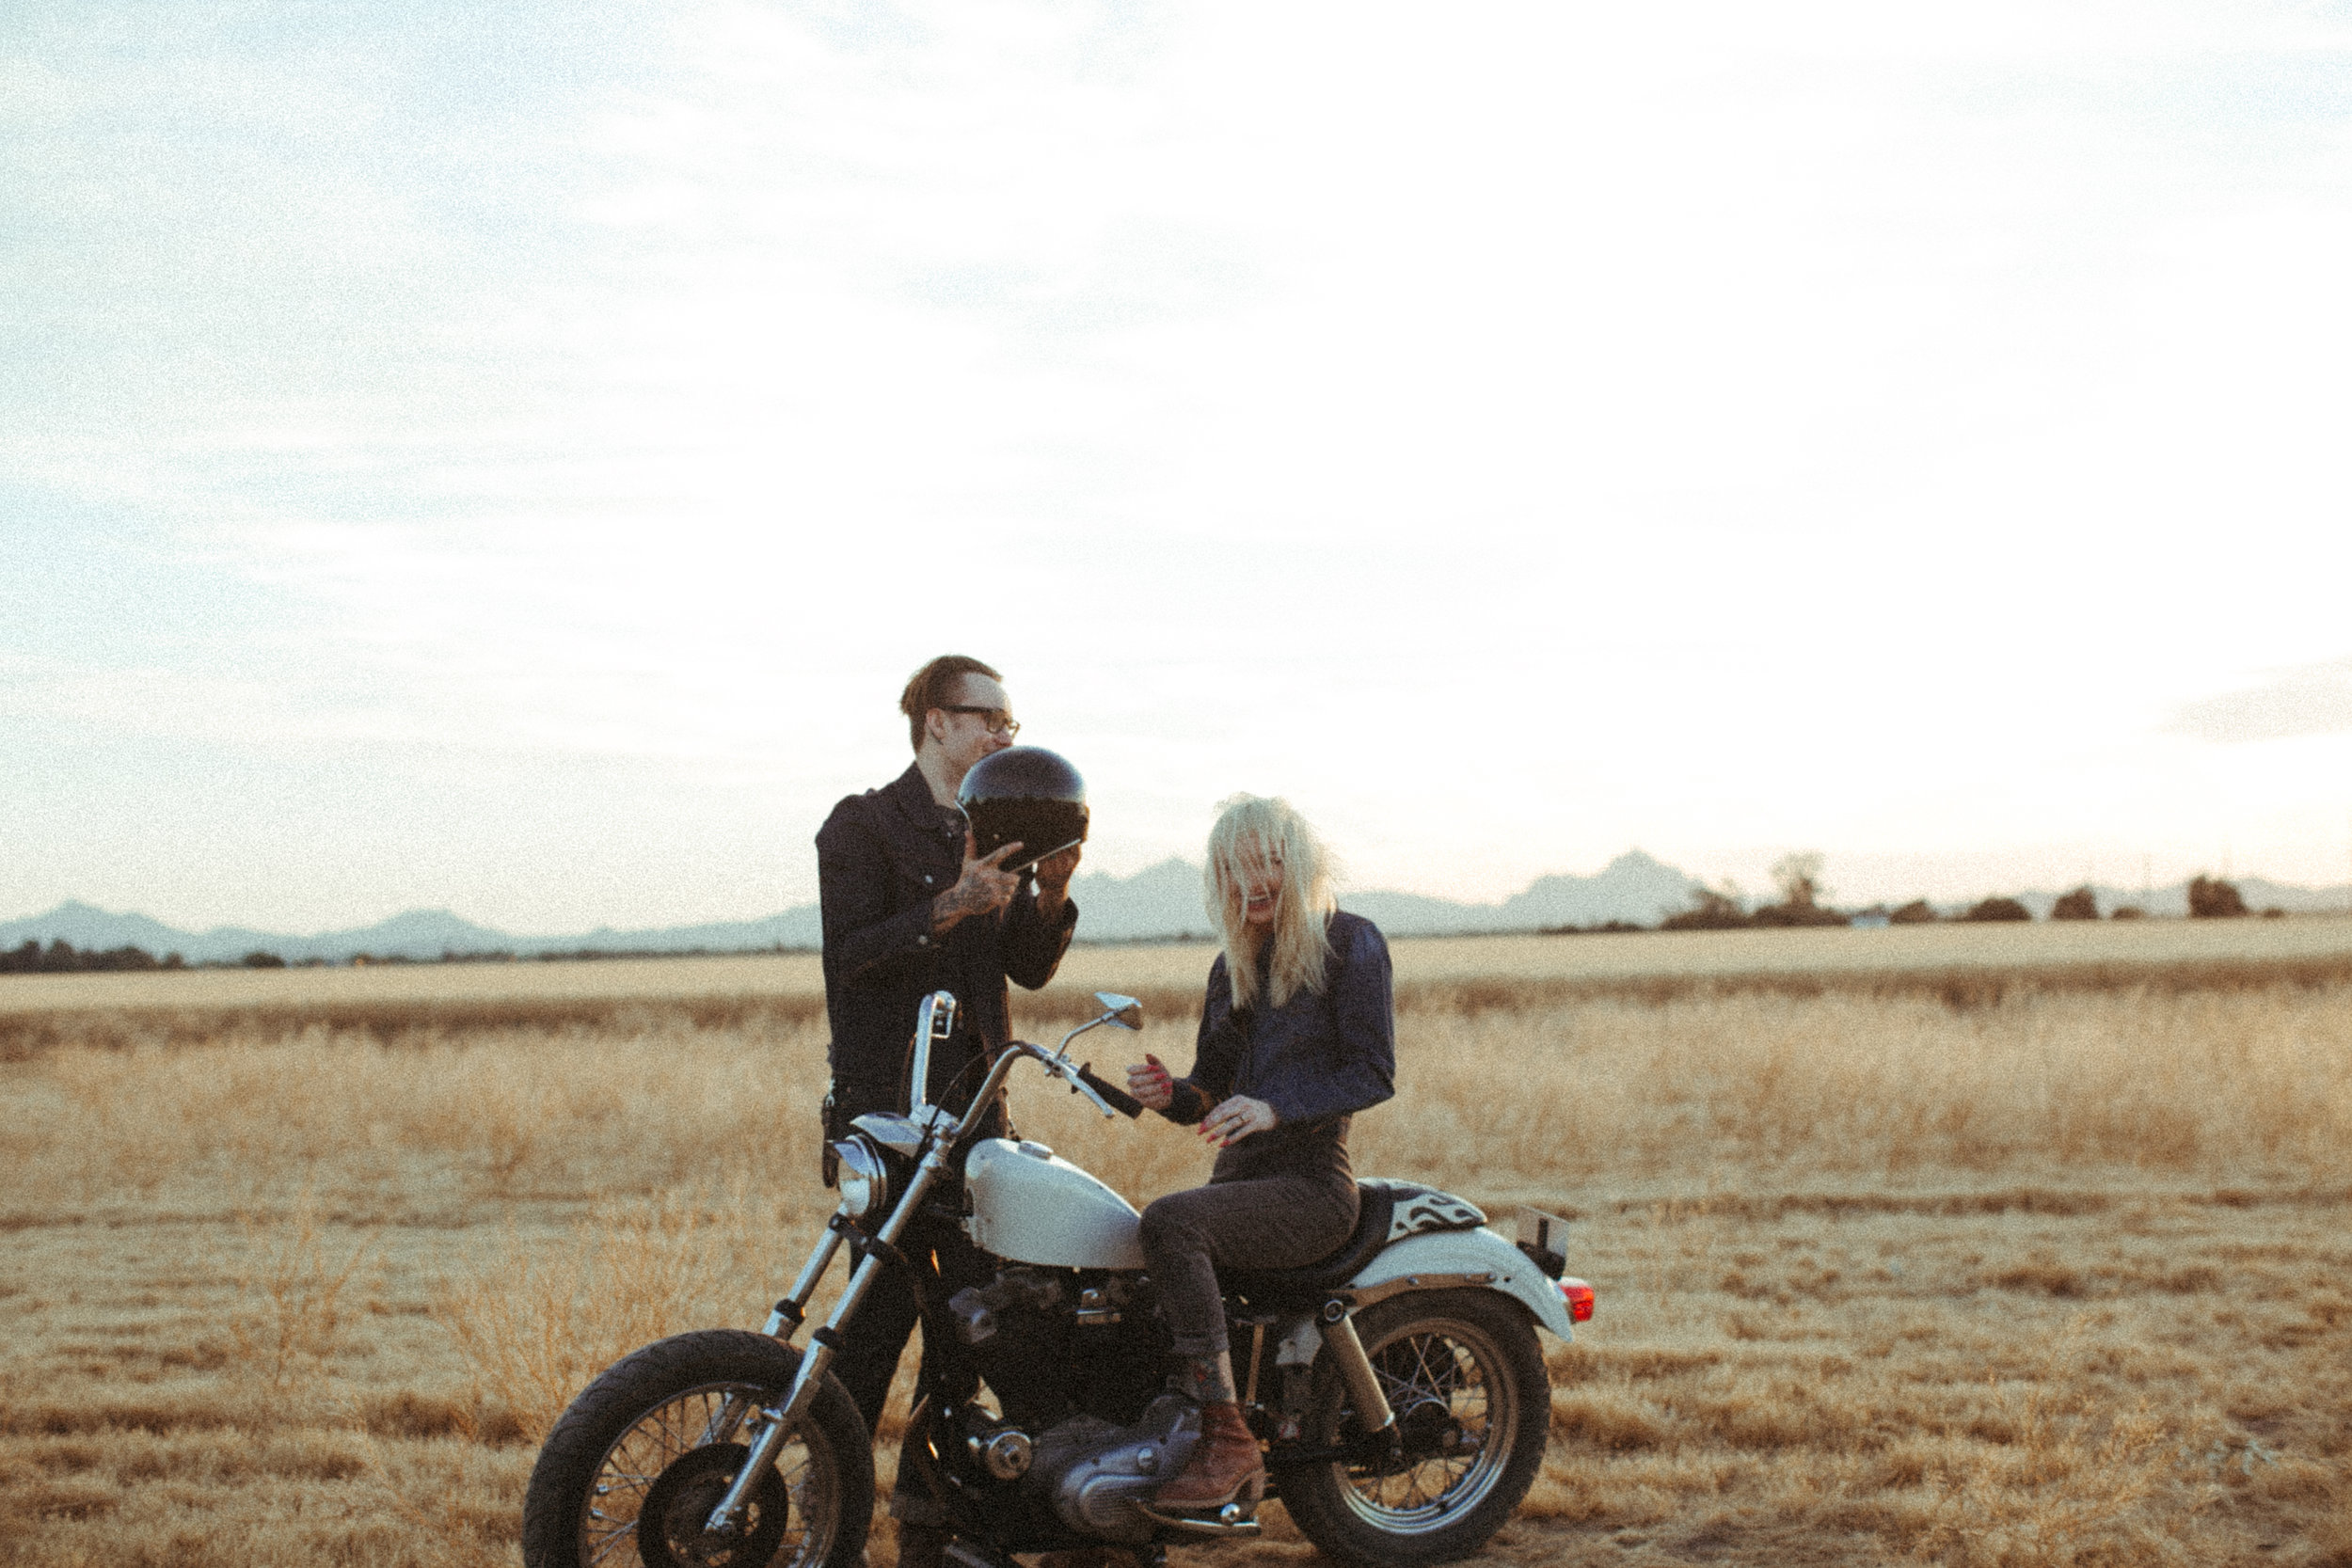 Miranda + Aiden's country engagement .. with a touch of badass. - So we were suppose to shoot in the desert in Tucson with some cacti … then I drove past this random field and knew this would be perfect, and it so was. His bike in that beautiful soft grass, ugh. I could hang these on my wall.